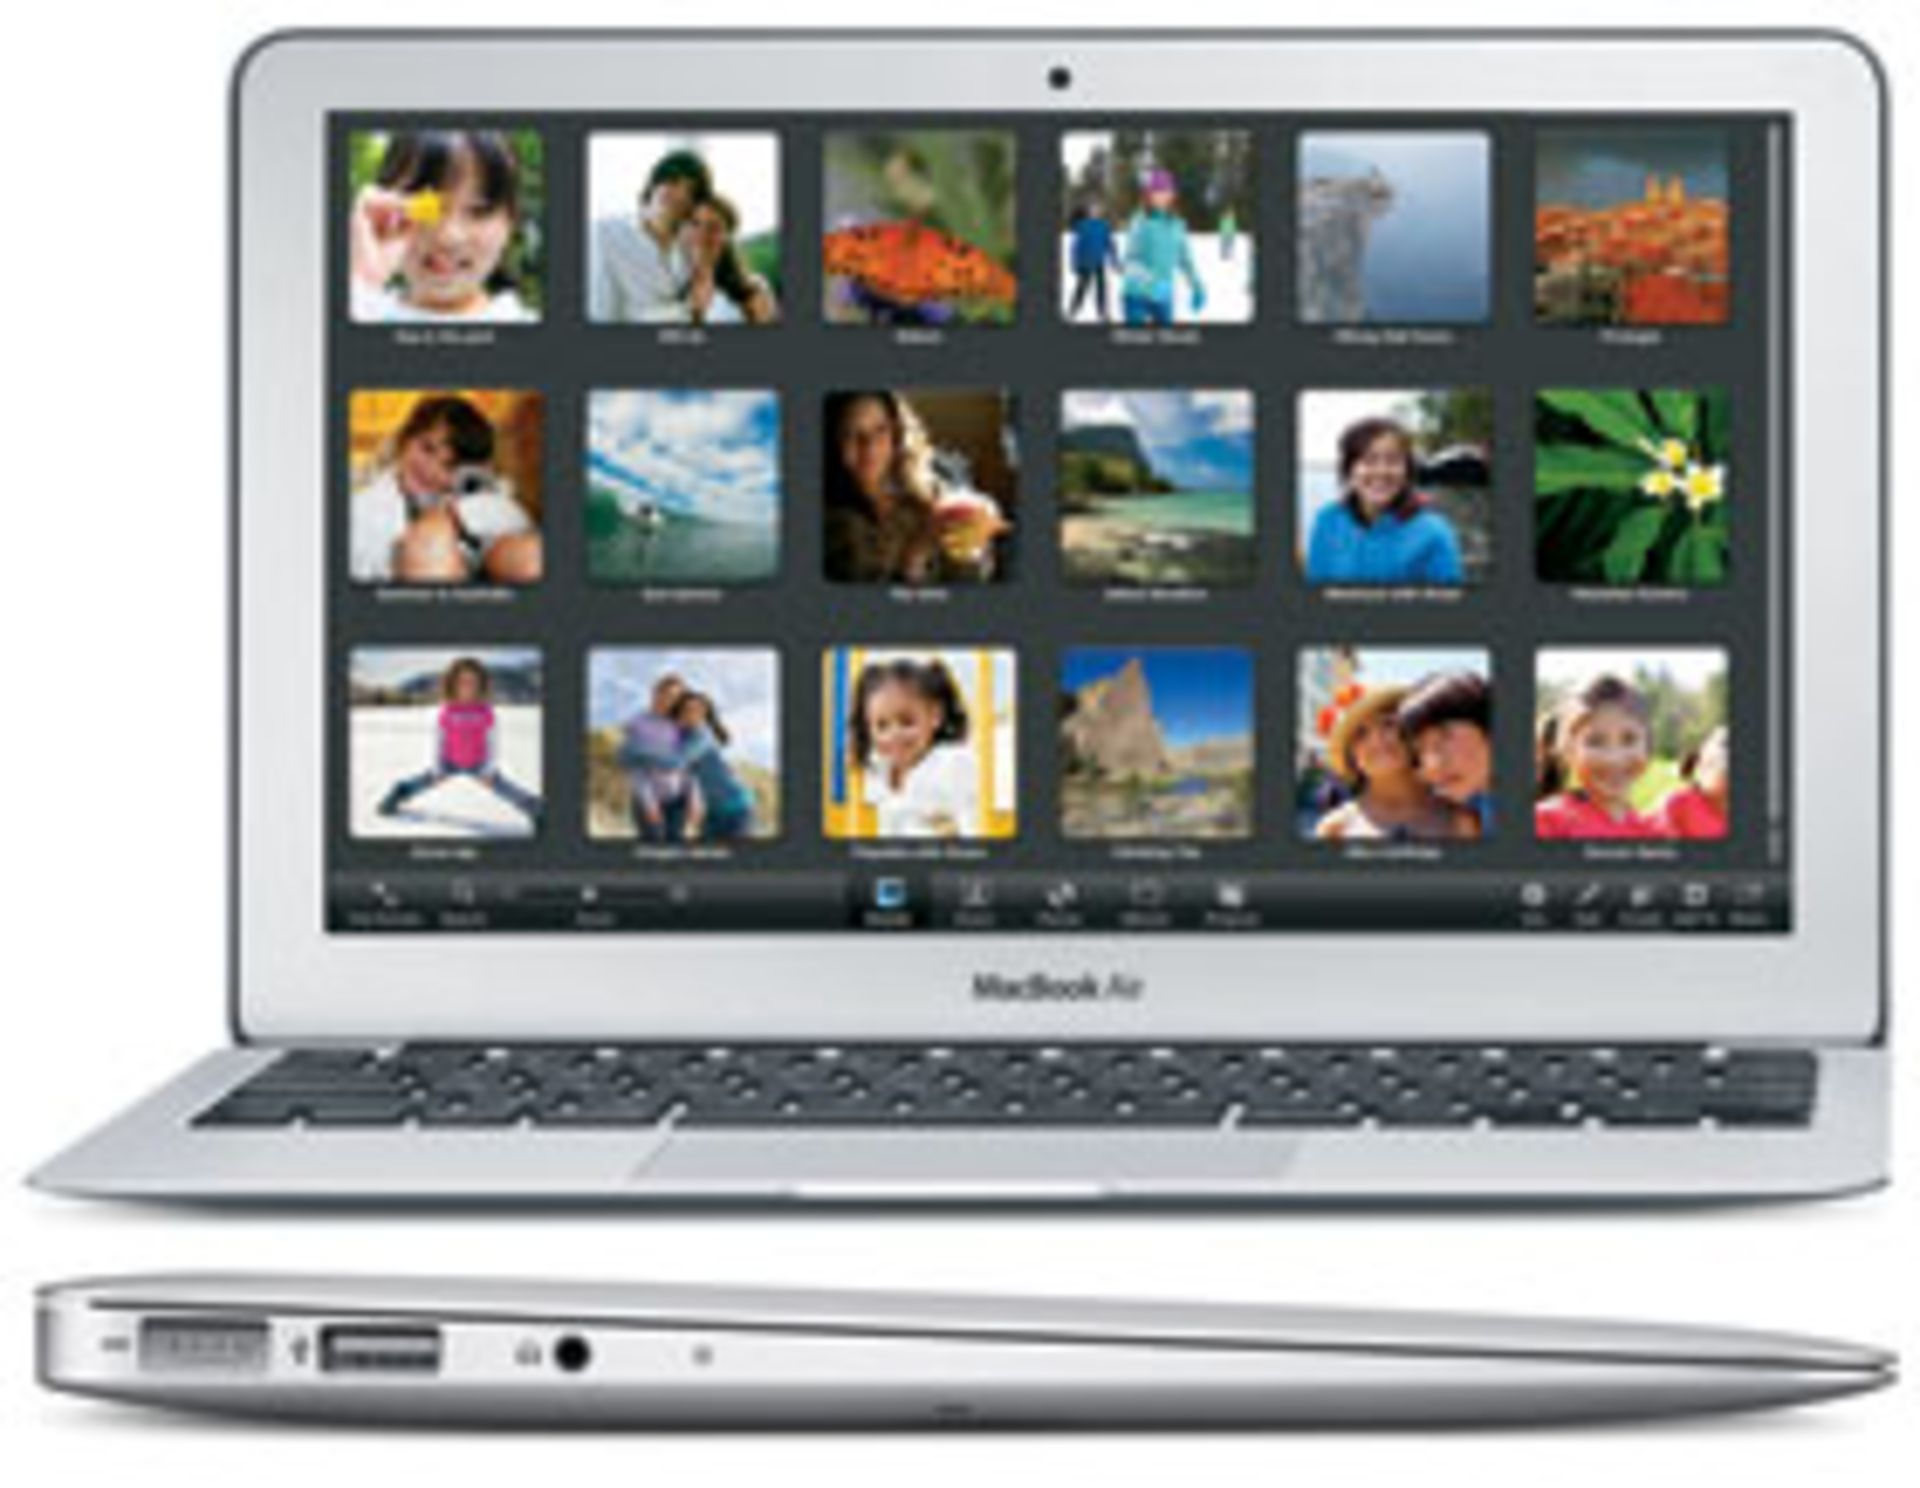 Lot 60044 - V Grade B Macbook Air 11.6 Inch Core 2 Duo - 64GB SSD - A1370 - Available Approx 7 Working Days